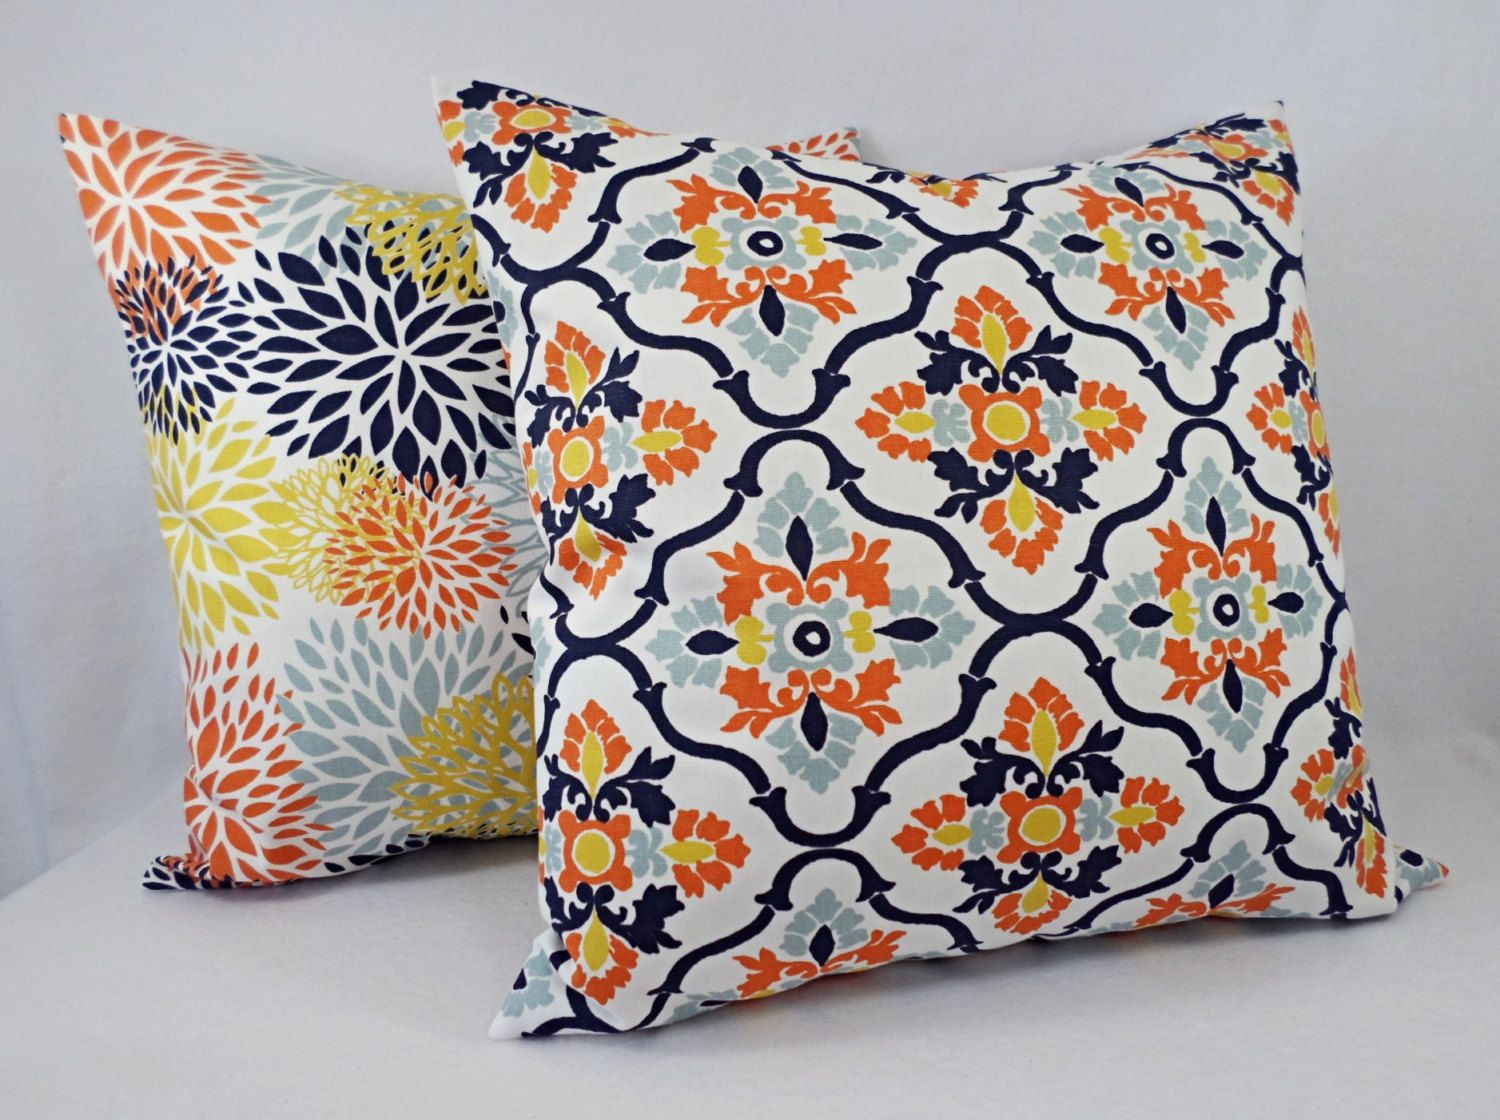 26X26 Pillow Insert Orange Navy Pillow Cover  Orange Pillow Cover  Navy Decorative